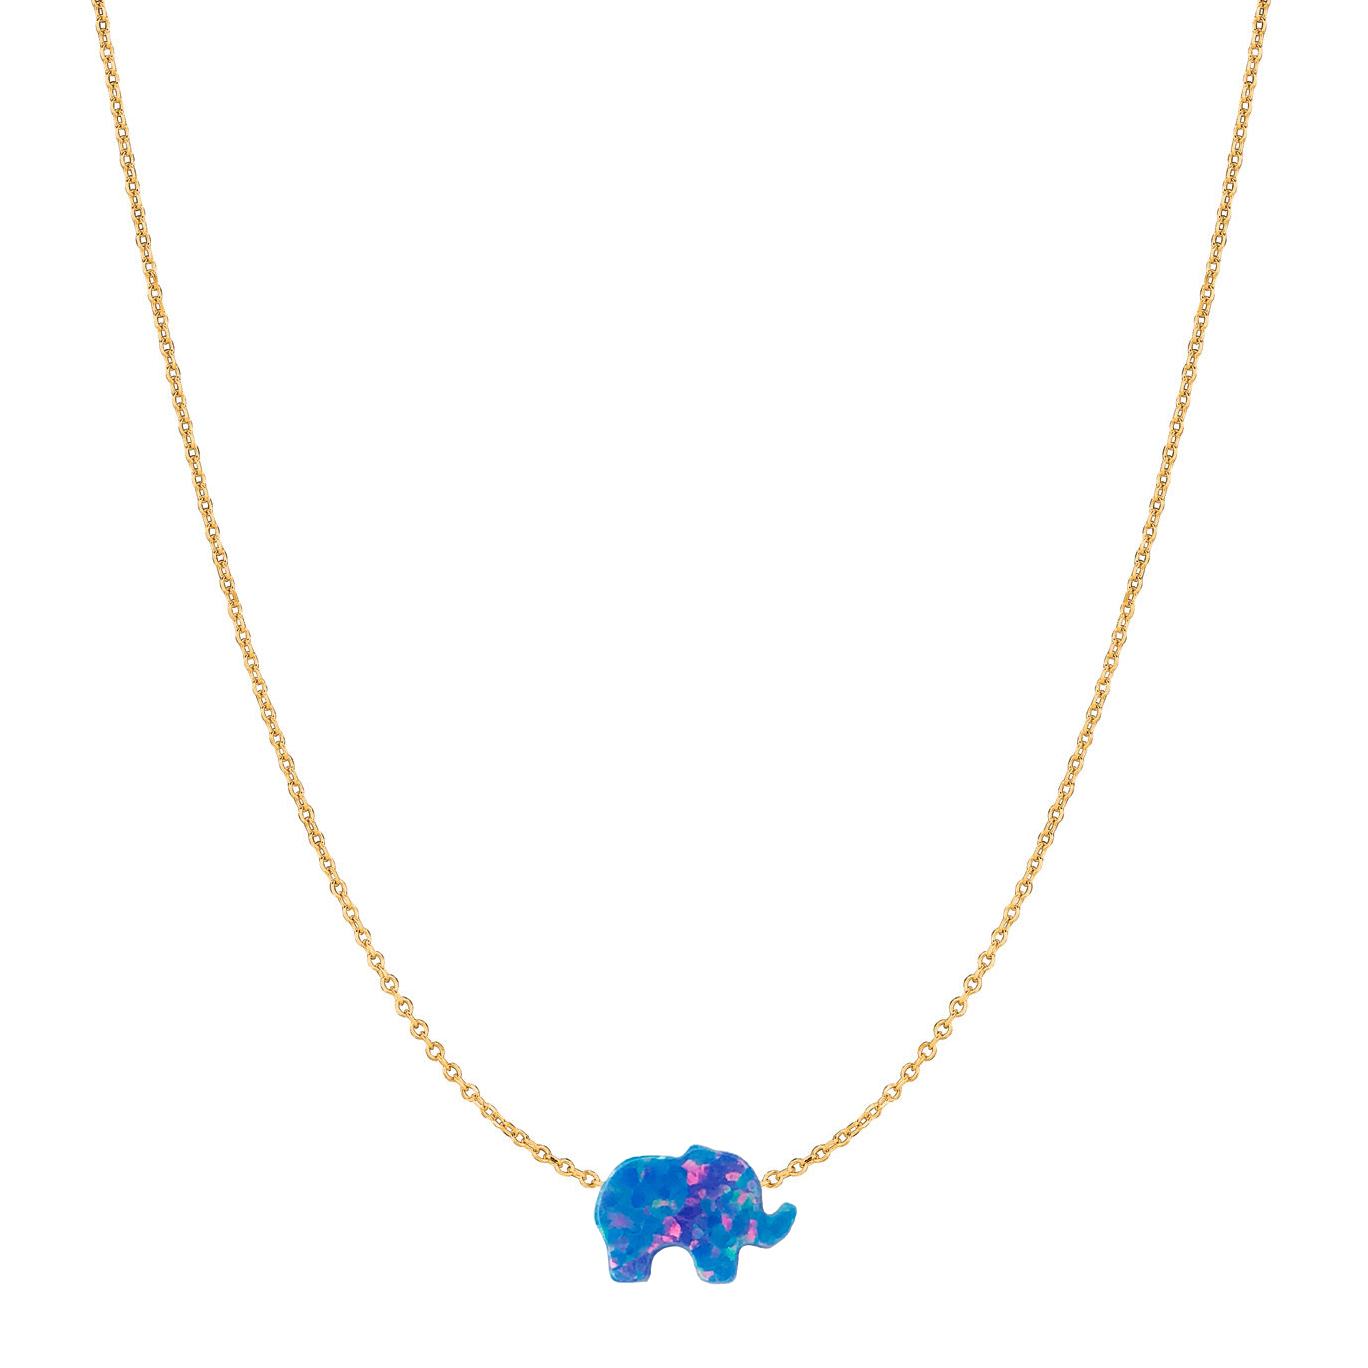 14 Karat Gold Blue Night Elephant Opal Necklace